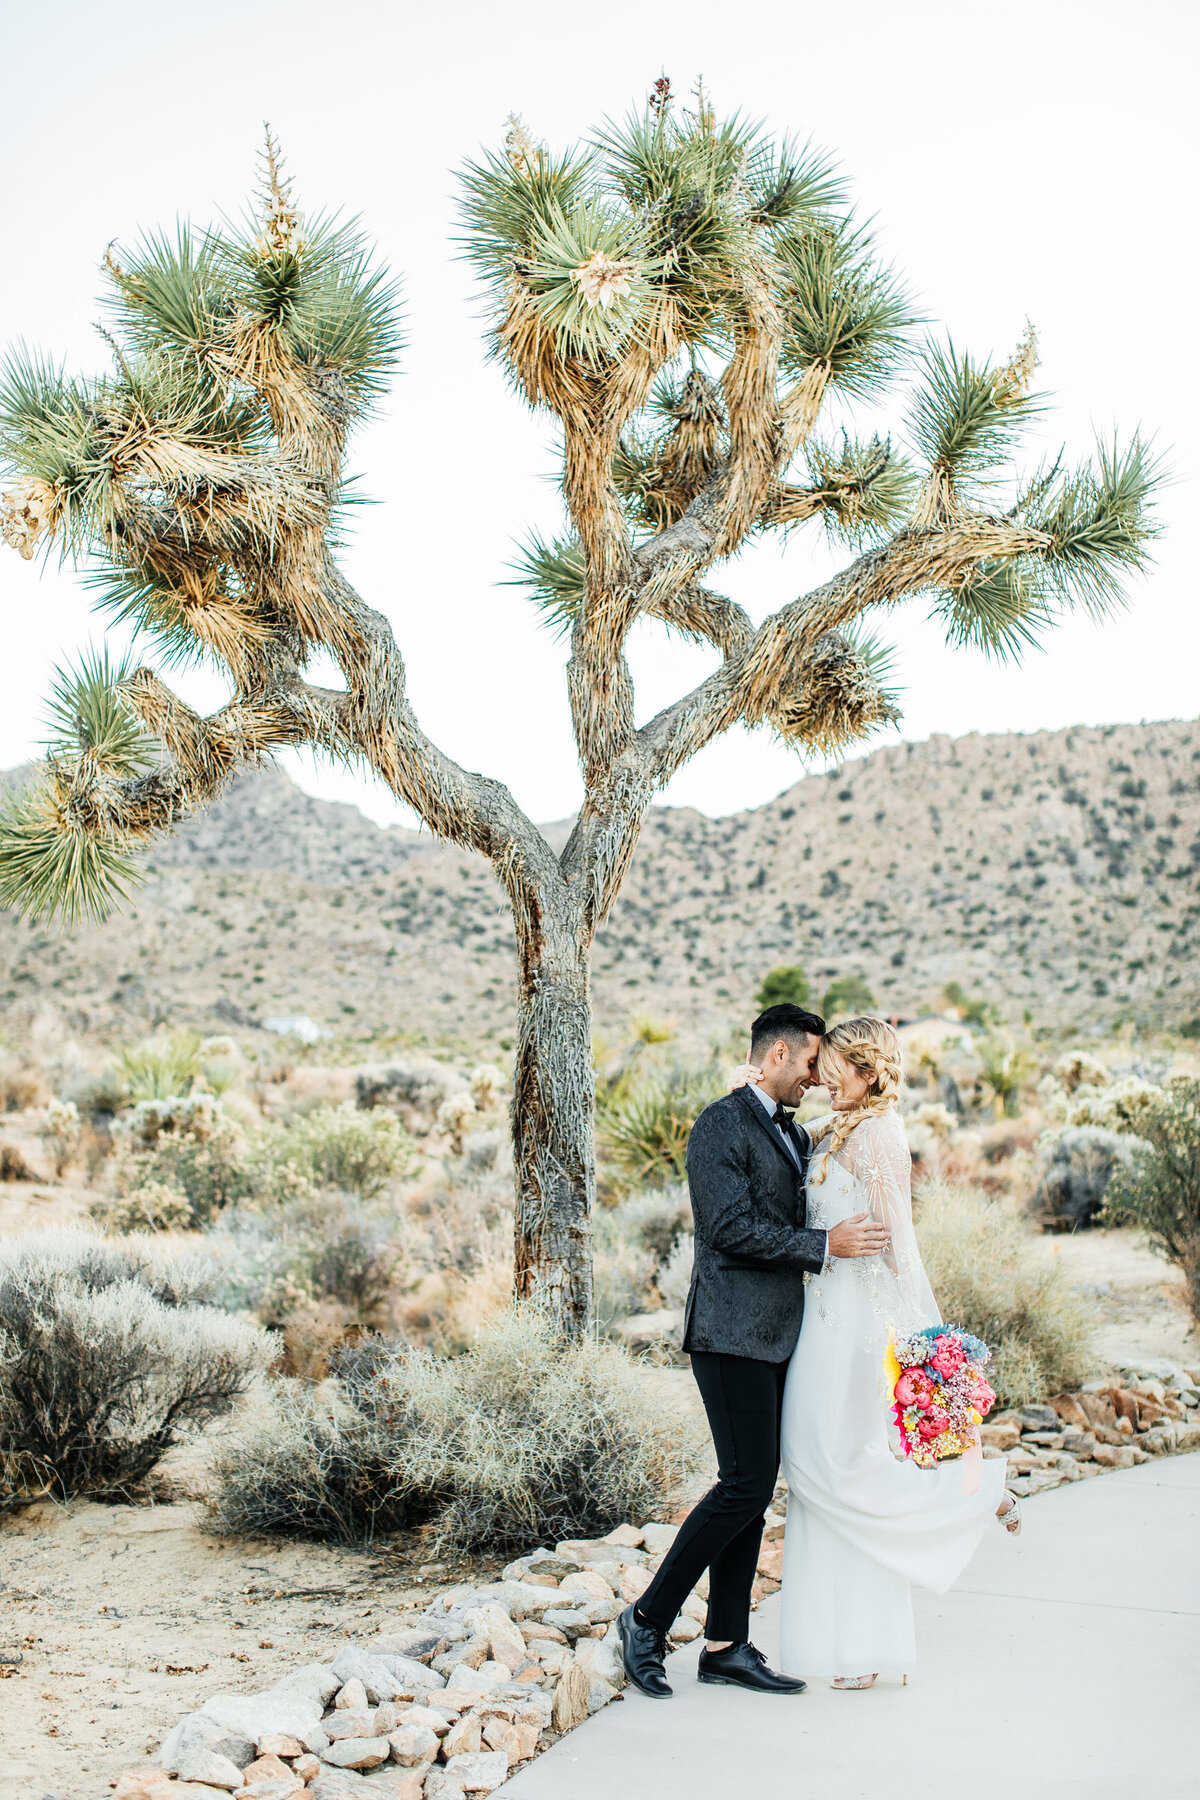 colorful-joshua-tree-elopement-inspiration-joshua-tree-wedding-photographer-palm-springs-wedding-photographer-erin-marton-photography-51